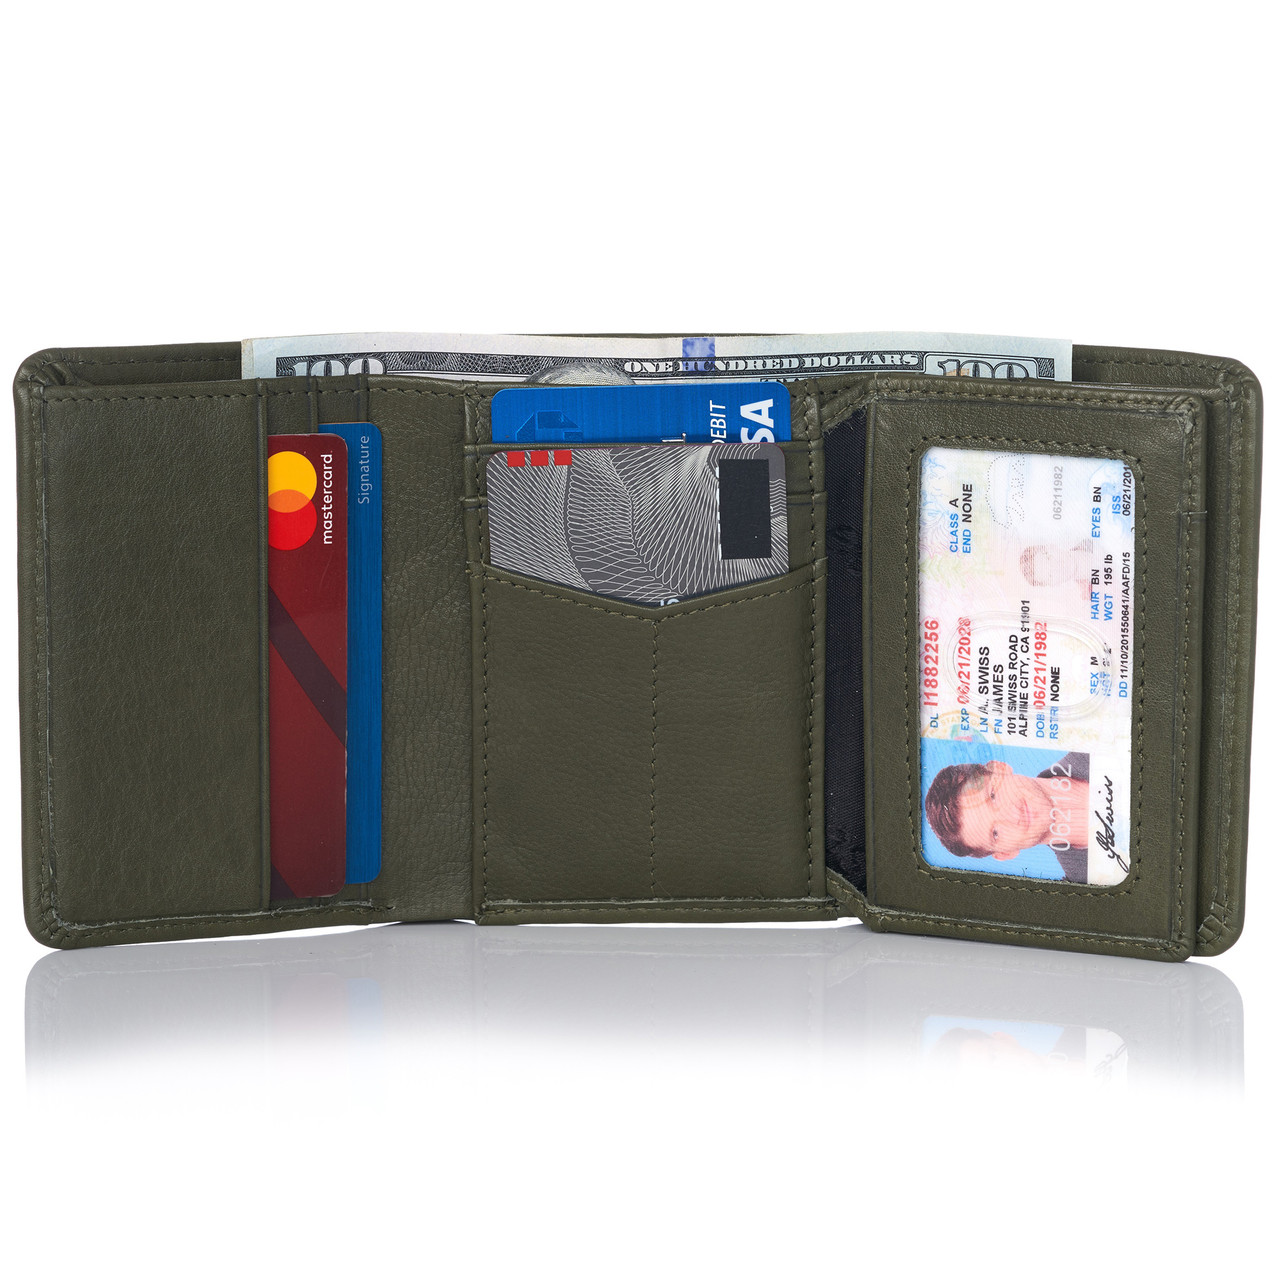 New Trifold Leather Man's wallet 9 credit card space 2 ID windows 2 billfolds BN